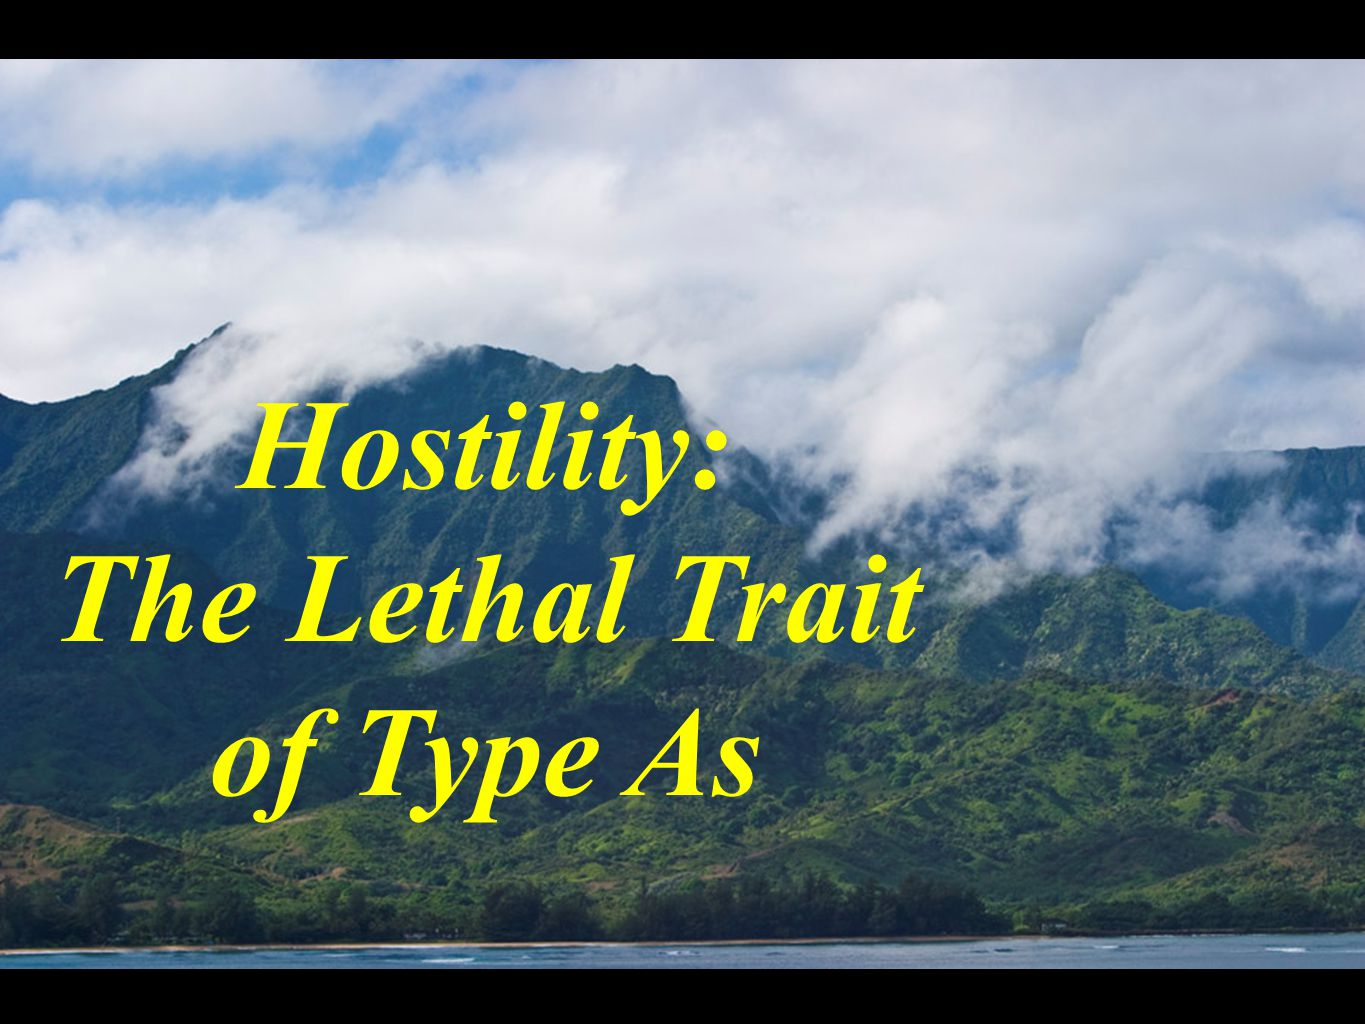 Hostility: The Lethal Trait of Type As